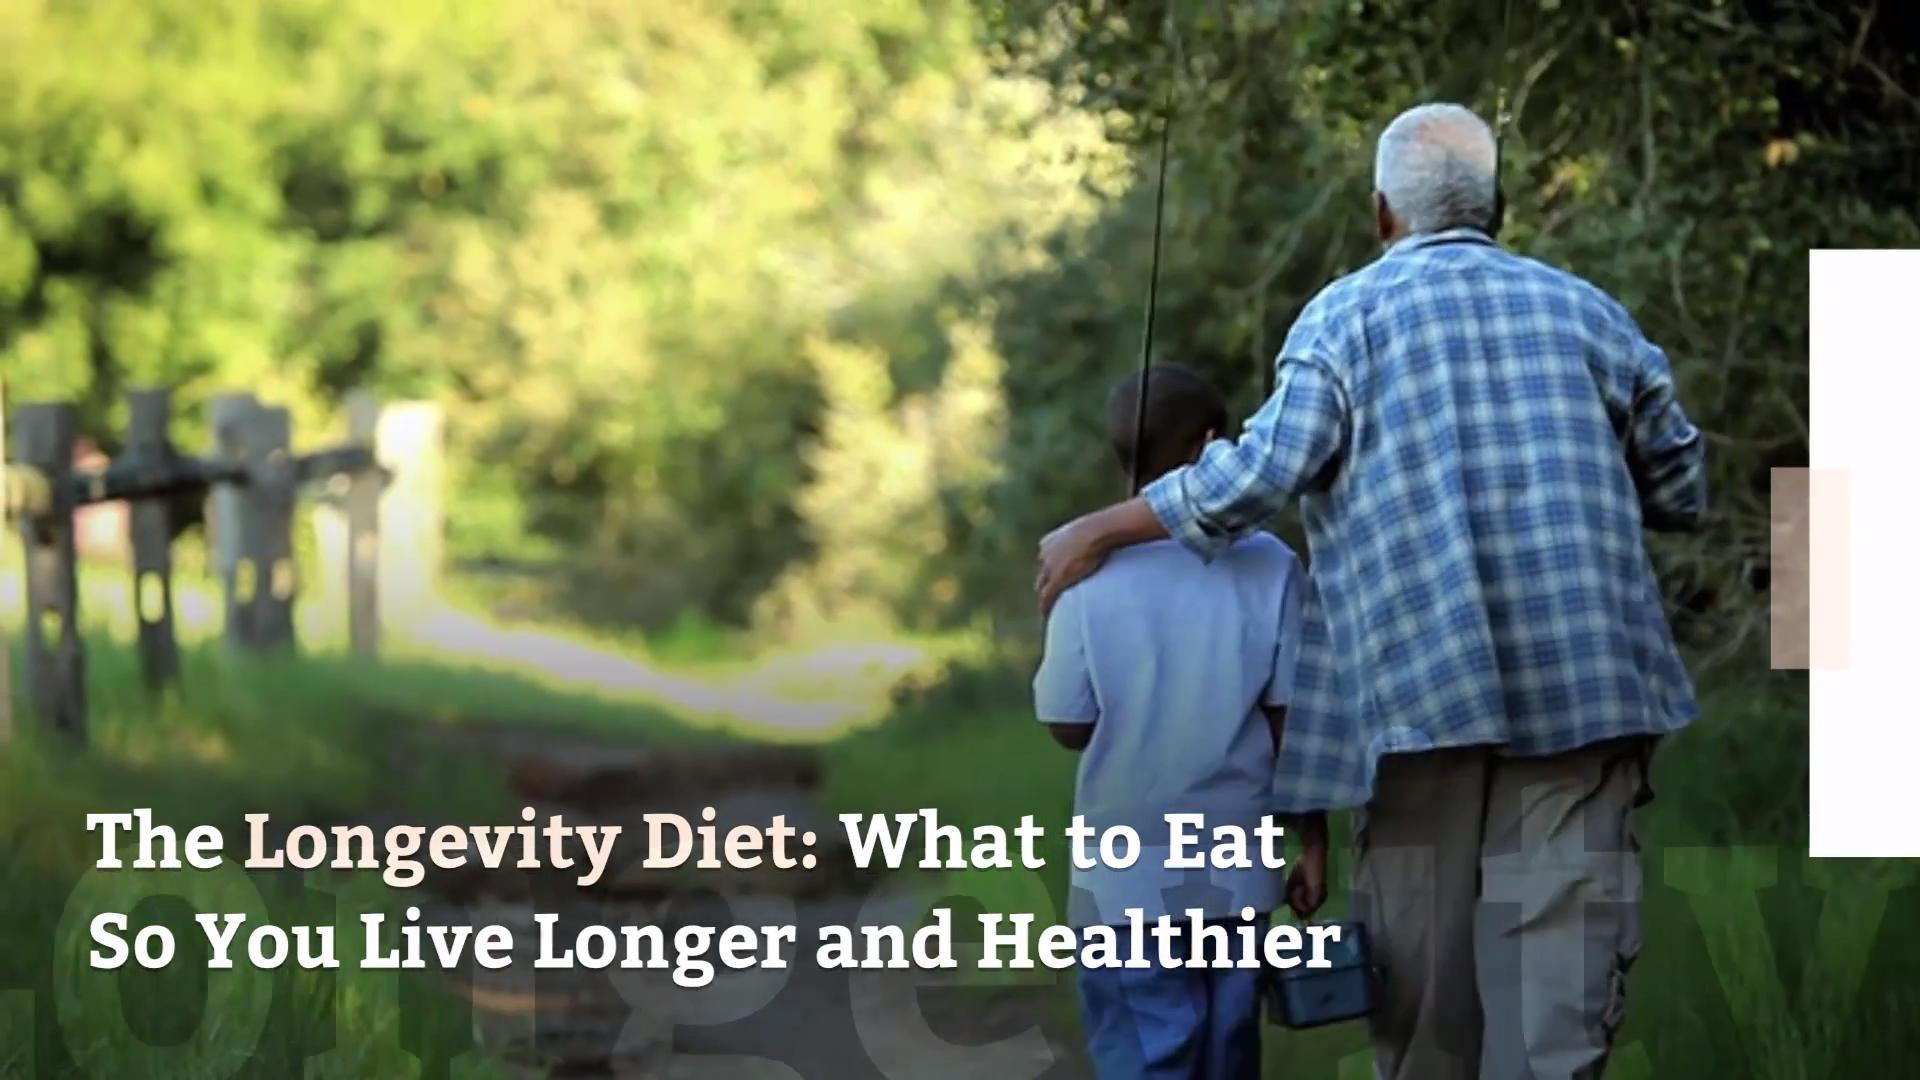 diets for a long life